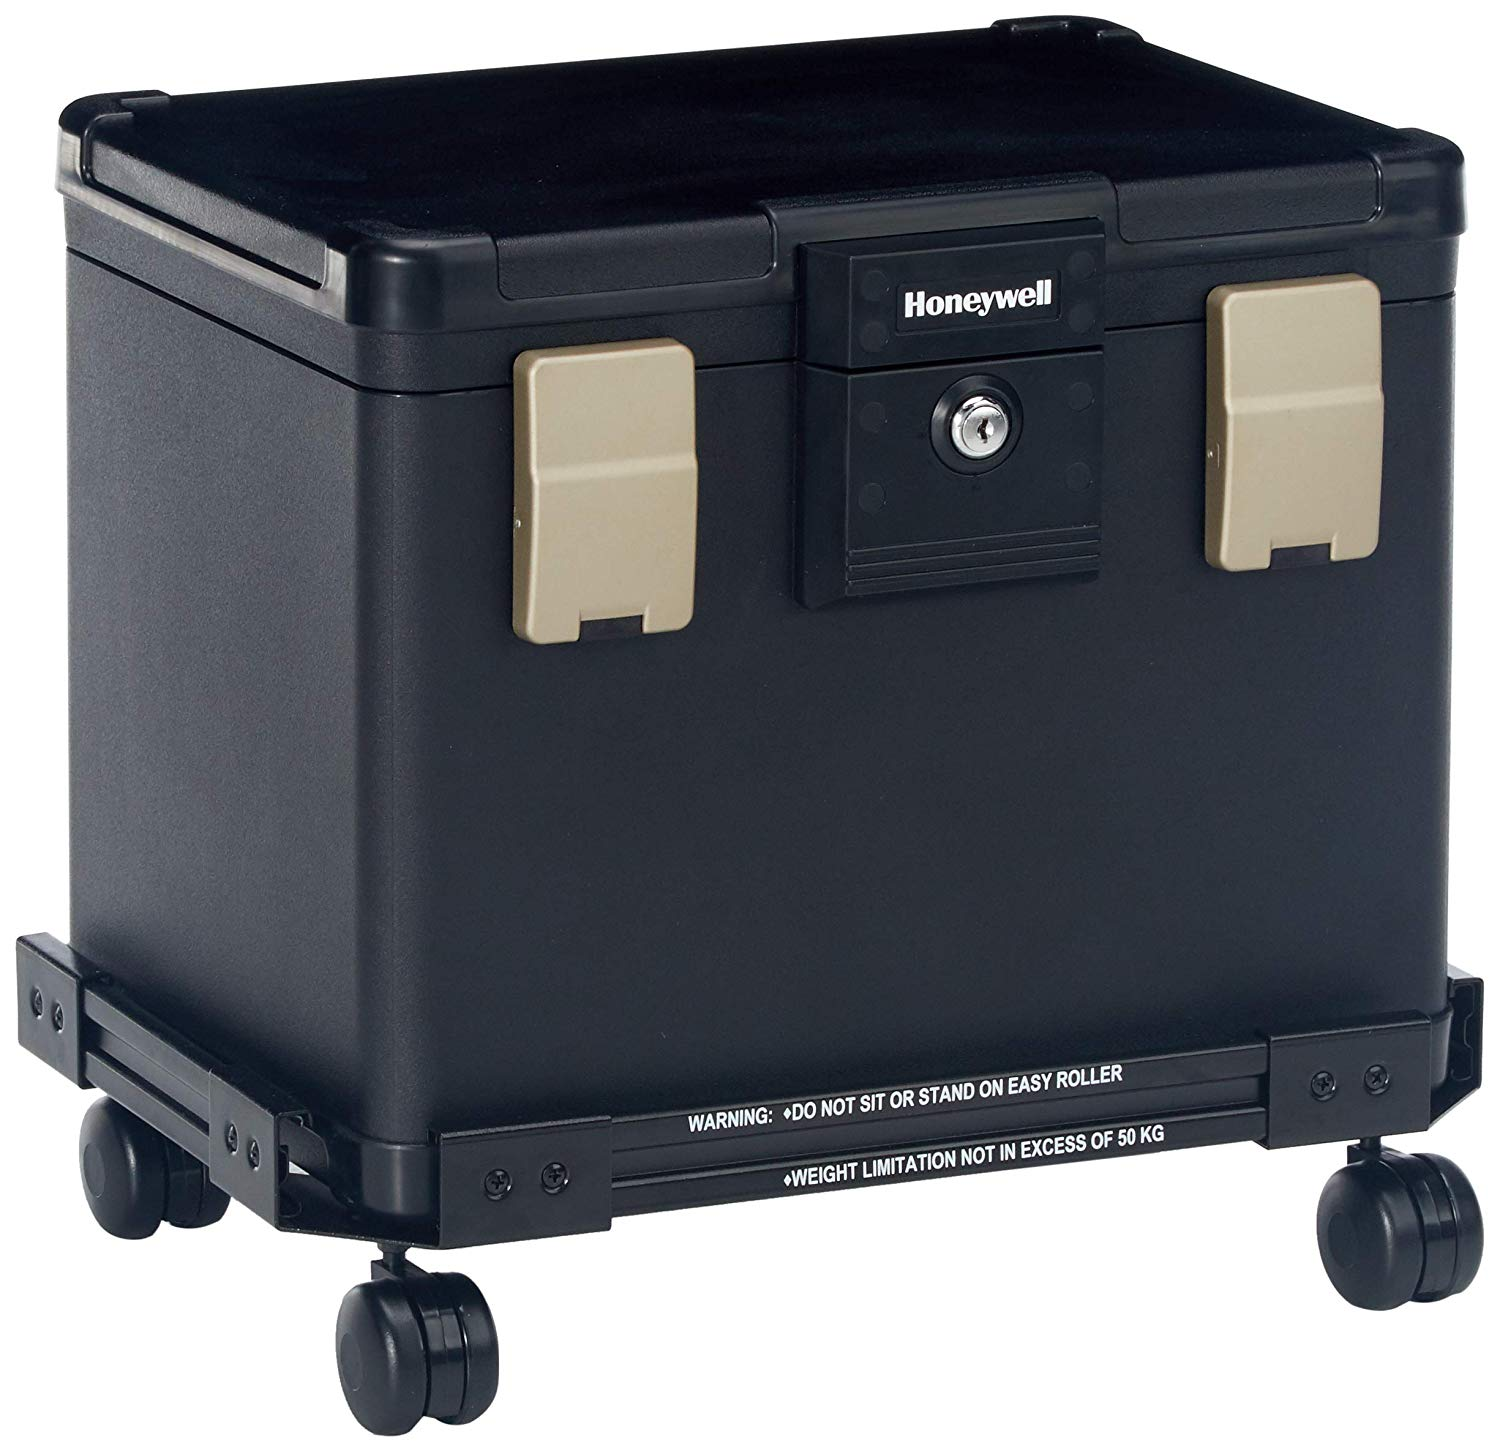 Honeywell Fire Water & Fire Proof Filing Chest With Cart